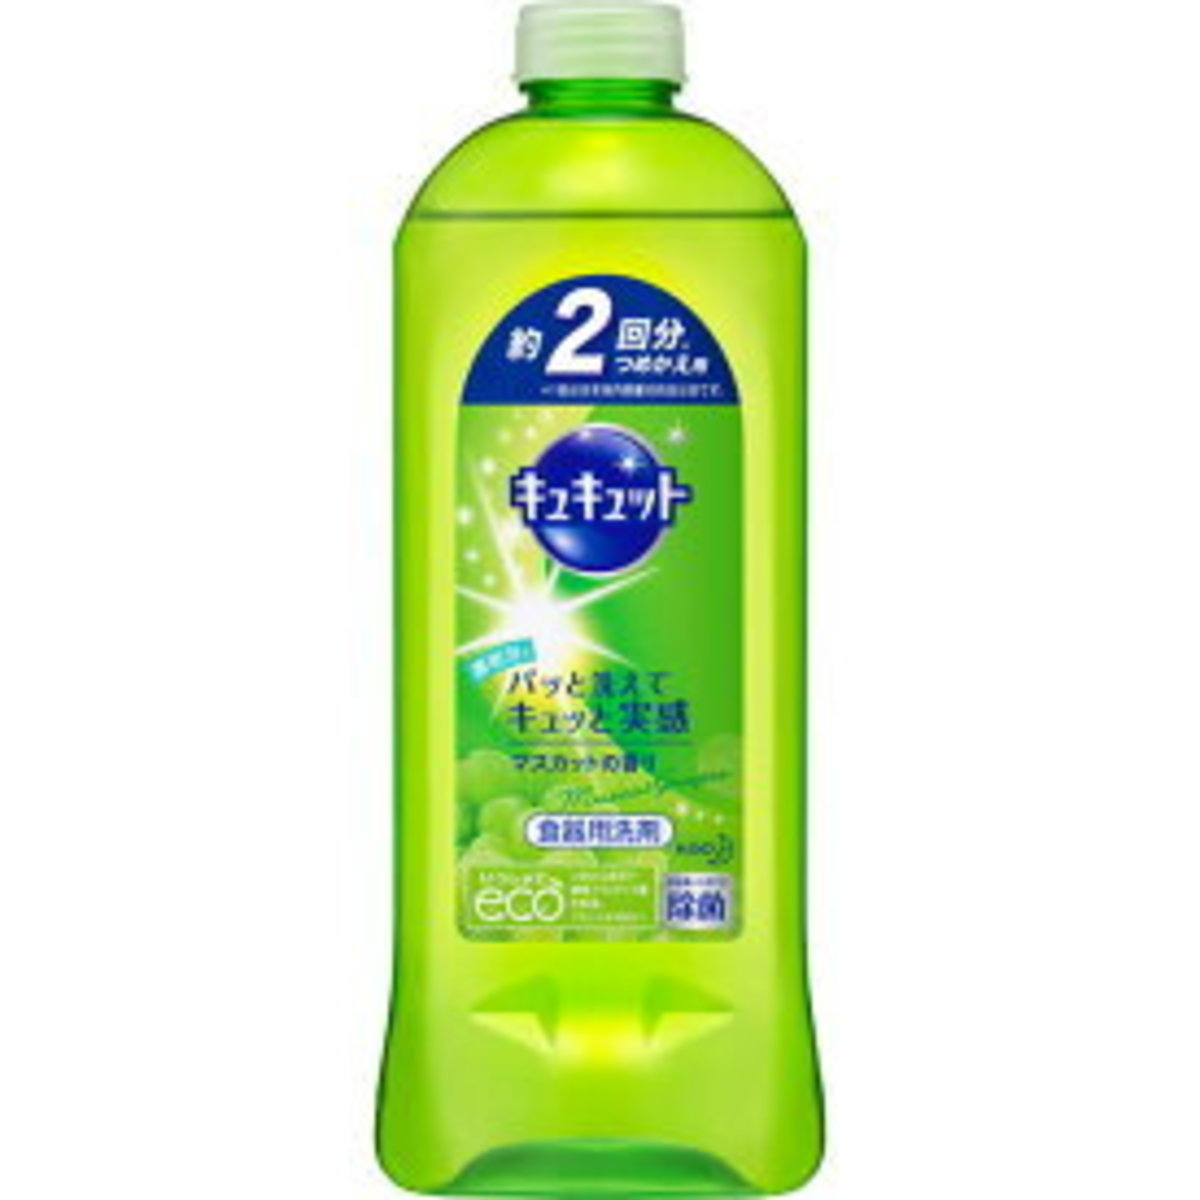 Cucute super-concentrated detergent sterilization (Green Titian) 385ml supplement village